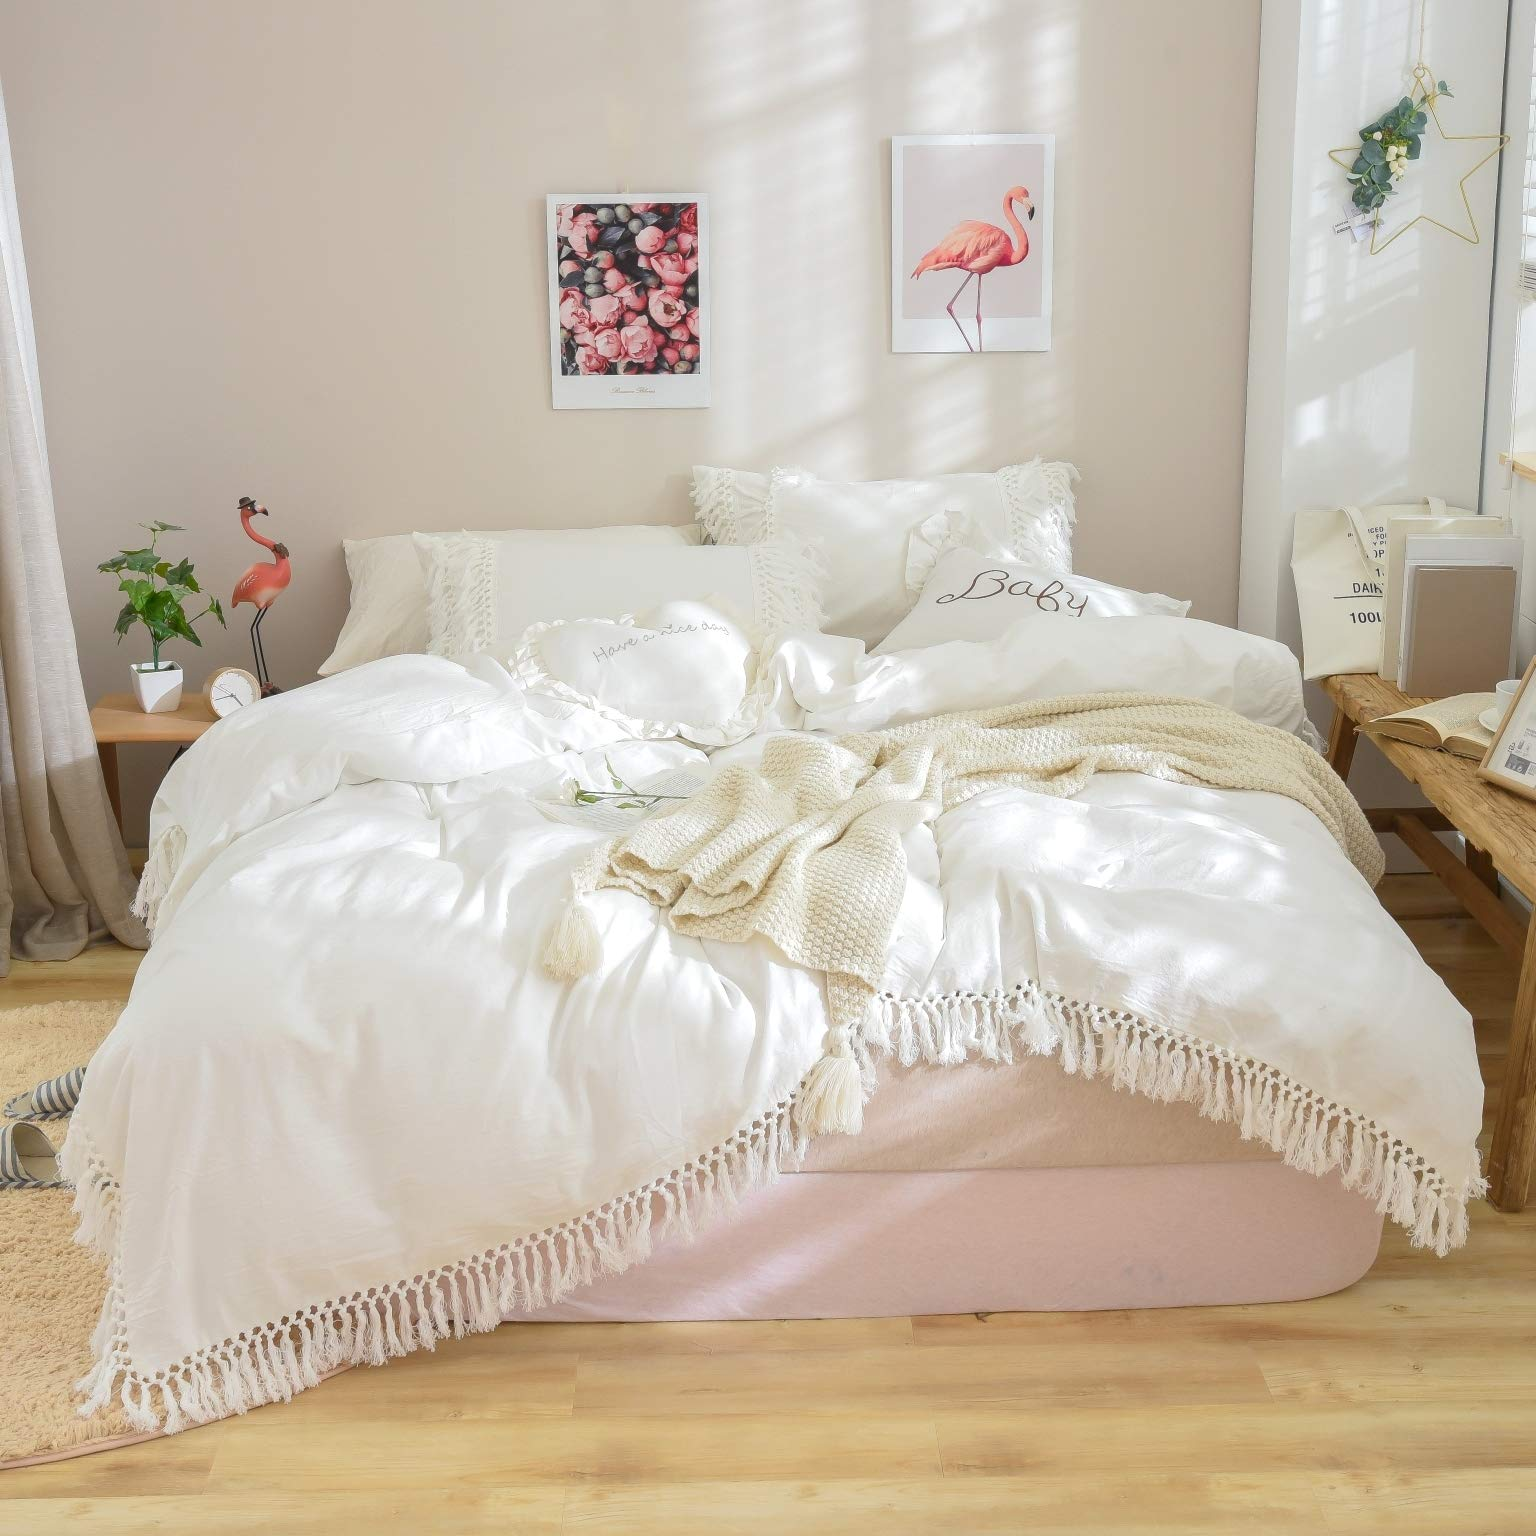 Softta White Duvet Cover Queen 3 Pcs Boho Bedding Ruffle Tassel Farmhouse Duvet Covers Fringed 100% Washed Cotton by Softta